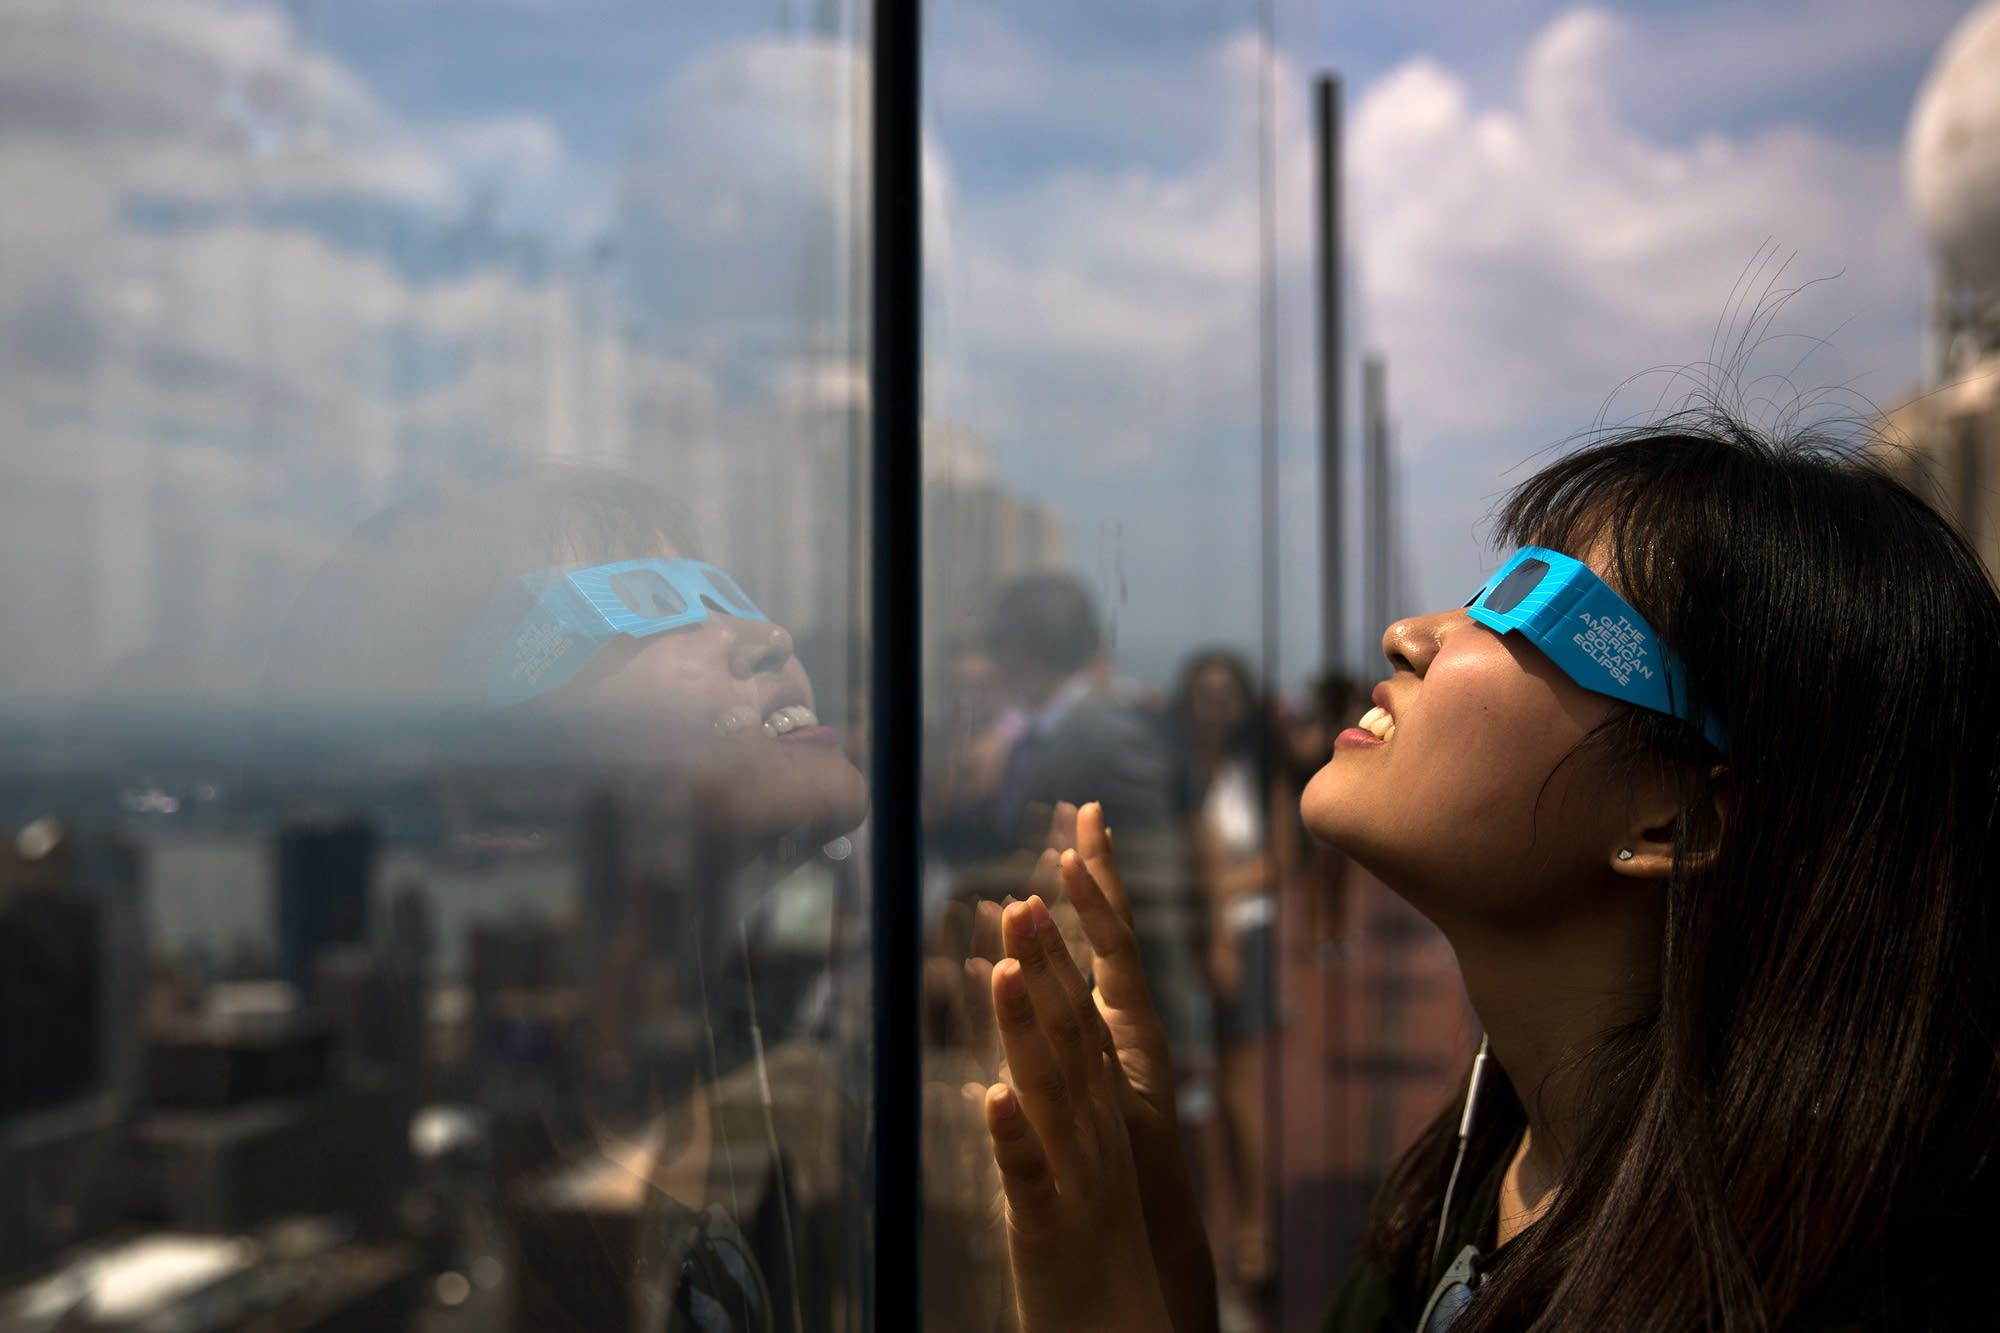 A woman views the solar eclipse at Rockefeller Center in New York City.